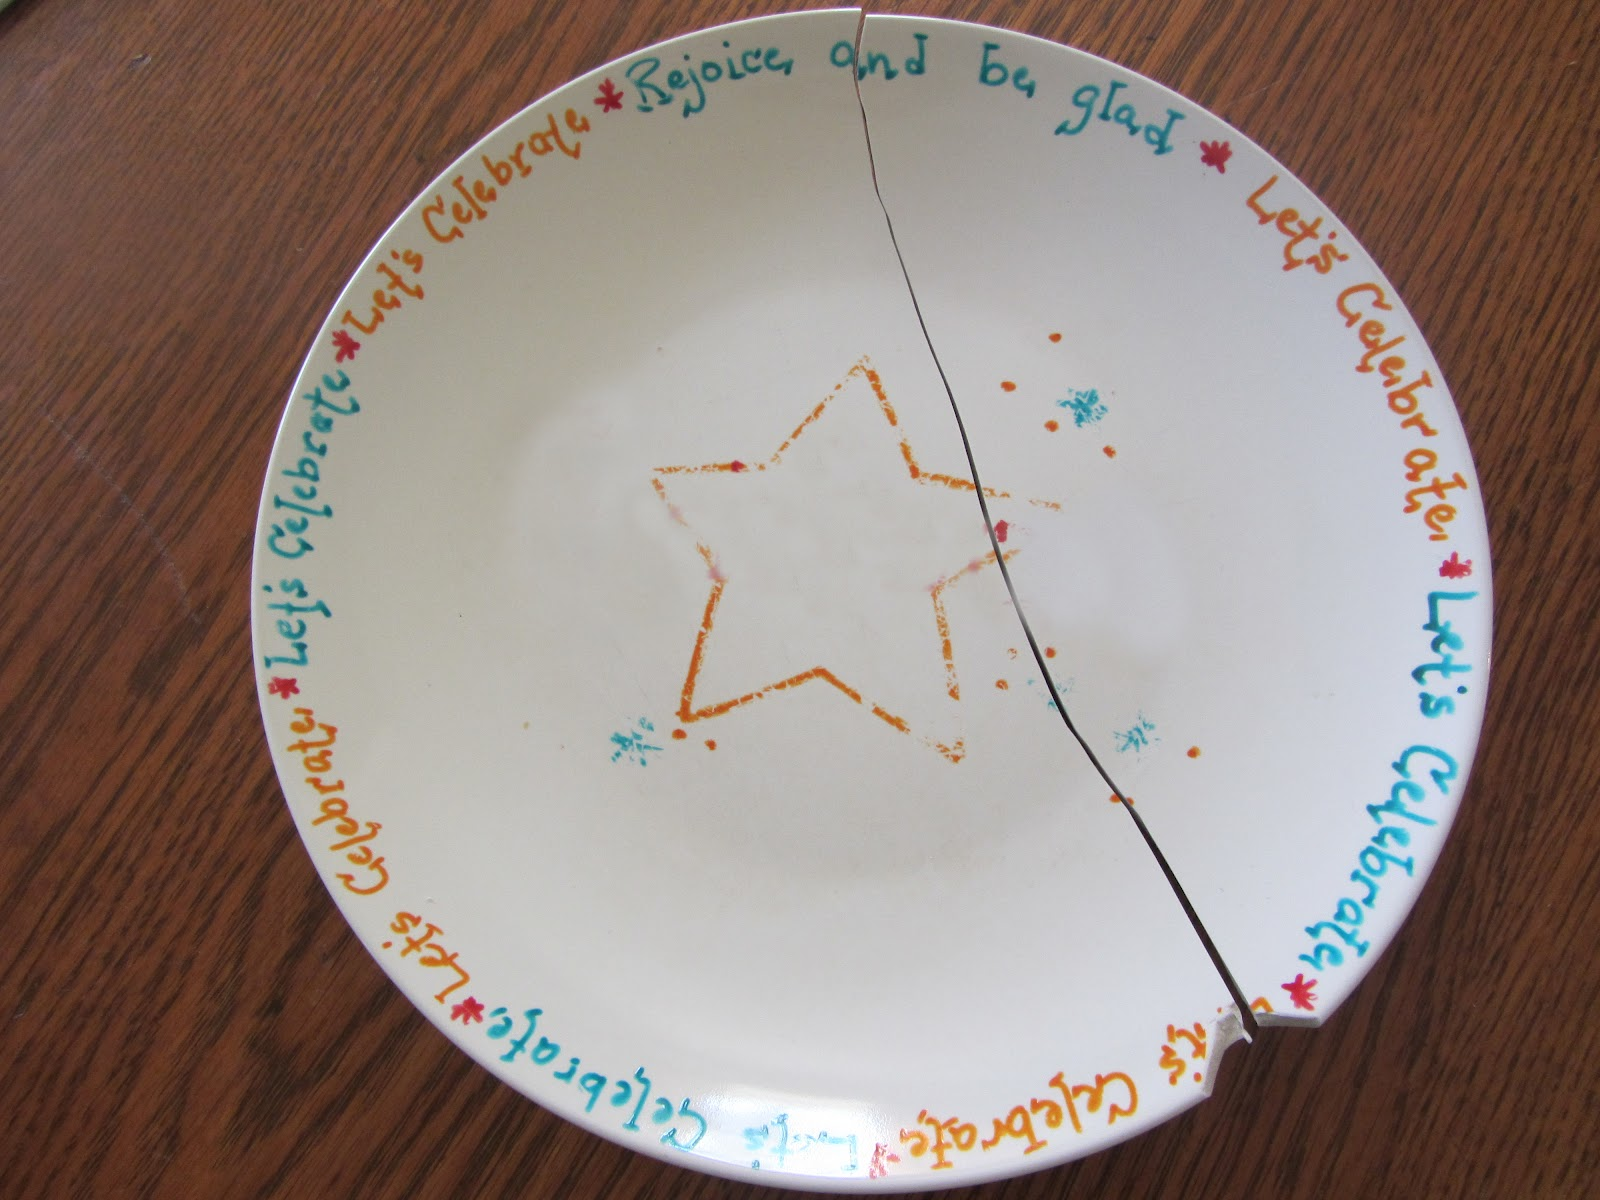 Make-A-Plate Kit Review \u0026 Giveaway & The Unlikely Homeschool: Make-A-Plate Kit Review \u0026 Giveaway